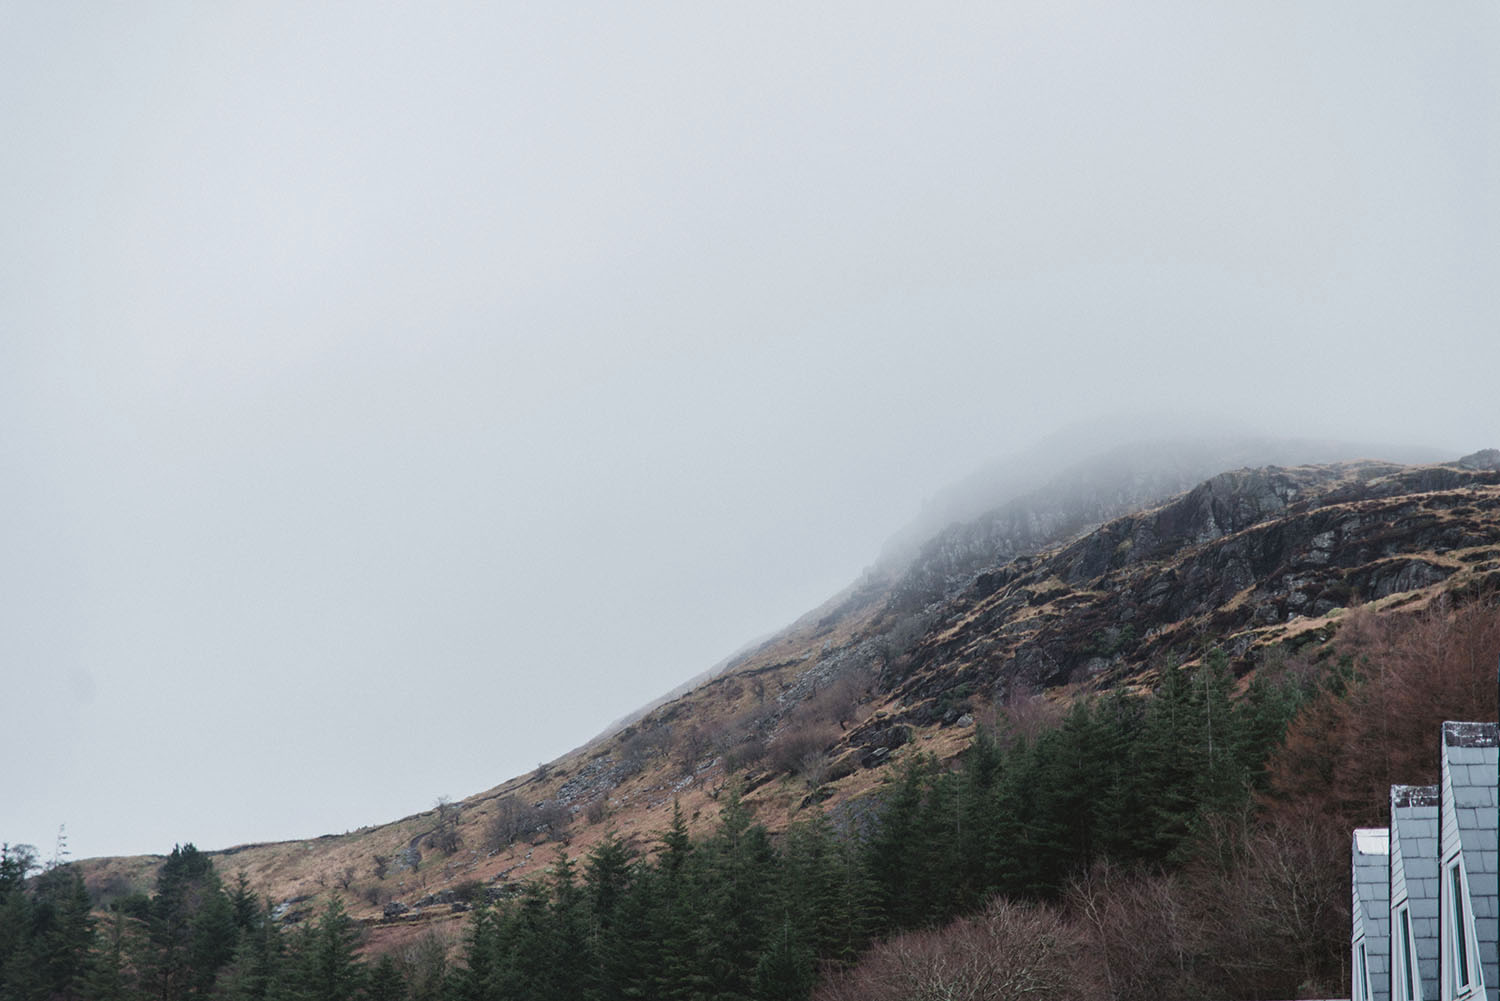 Misty mountains in Snowdonia National Park